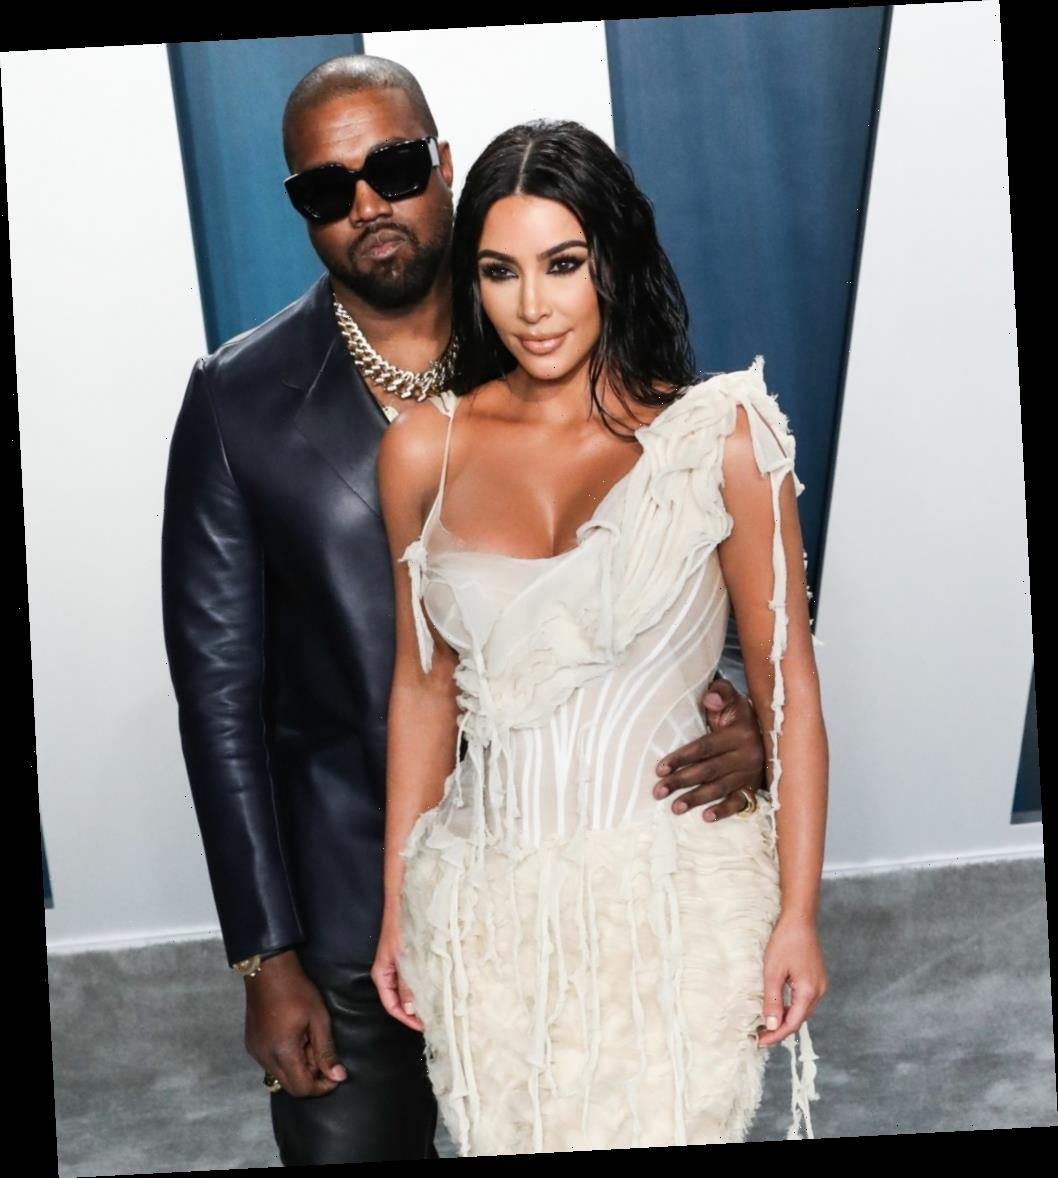 Kim Kardashian hasn't filed for divorce yet because she's still not sure?